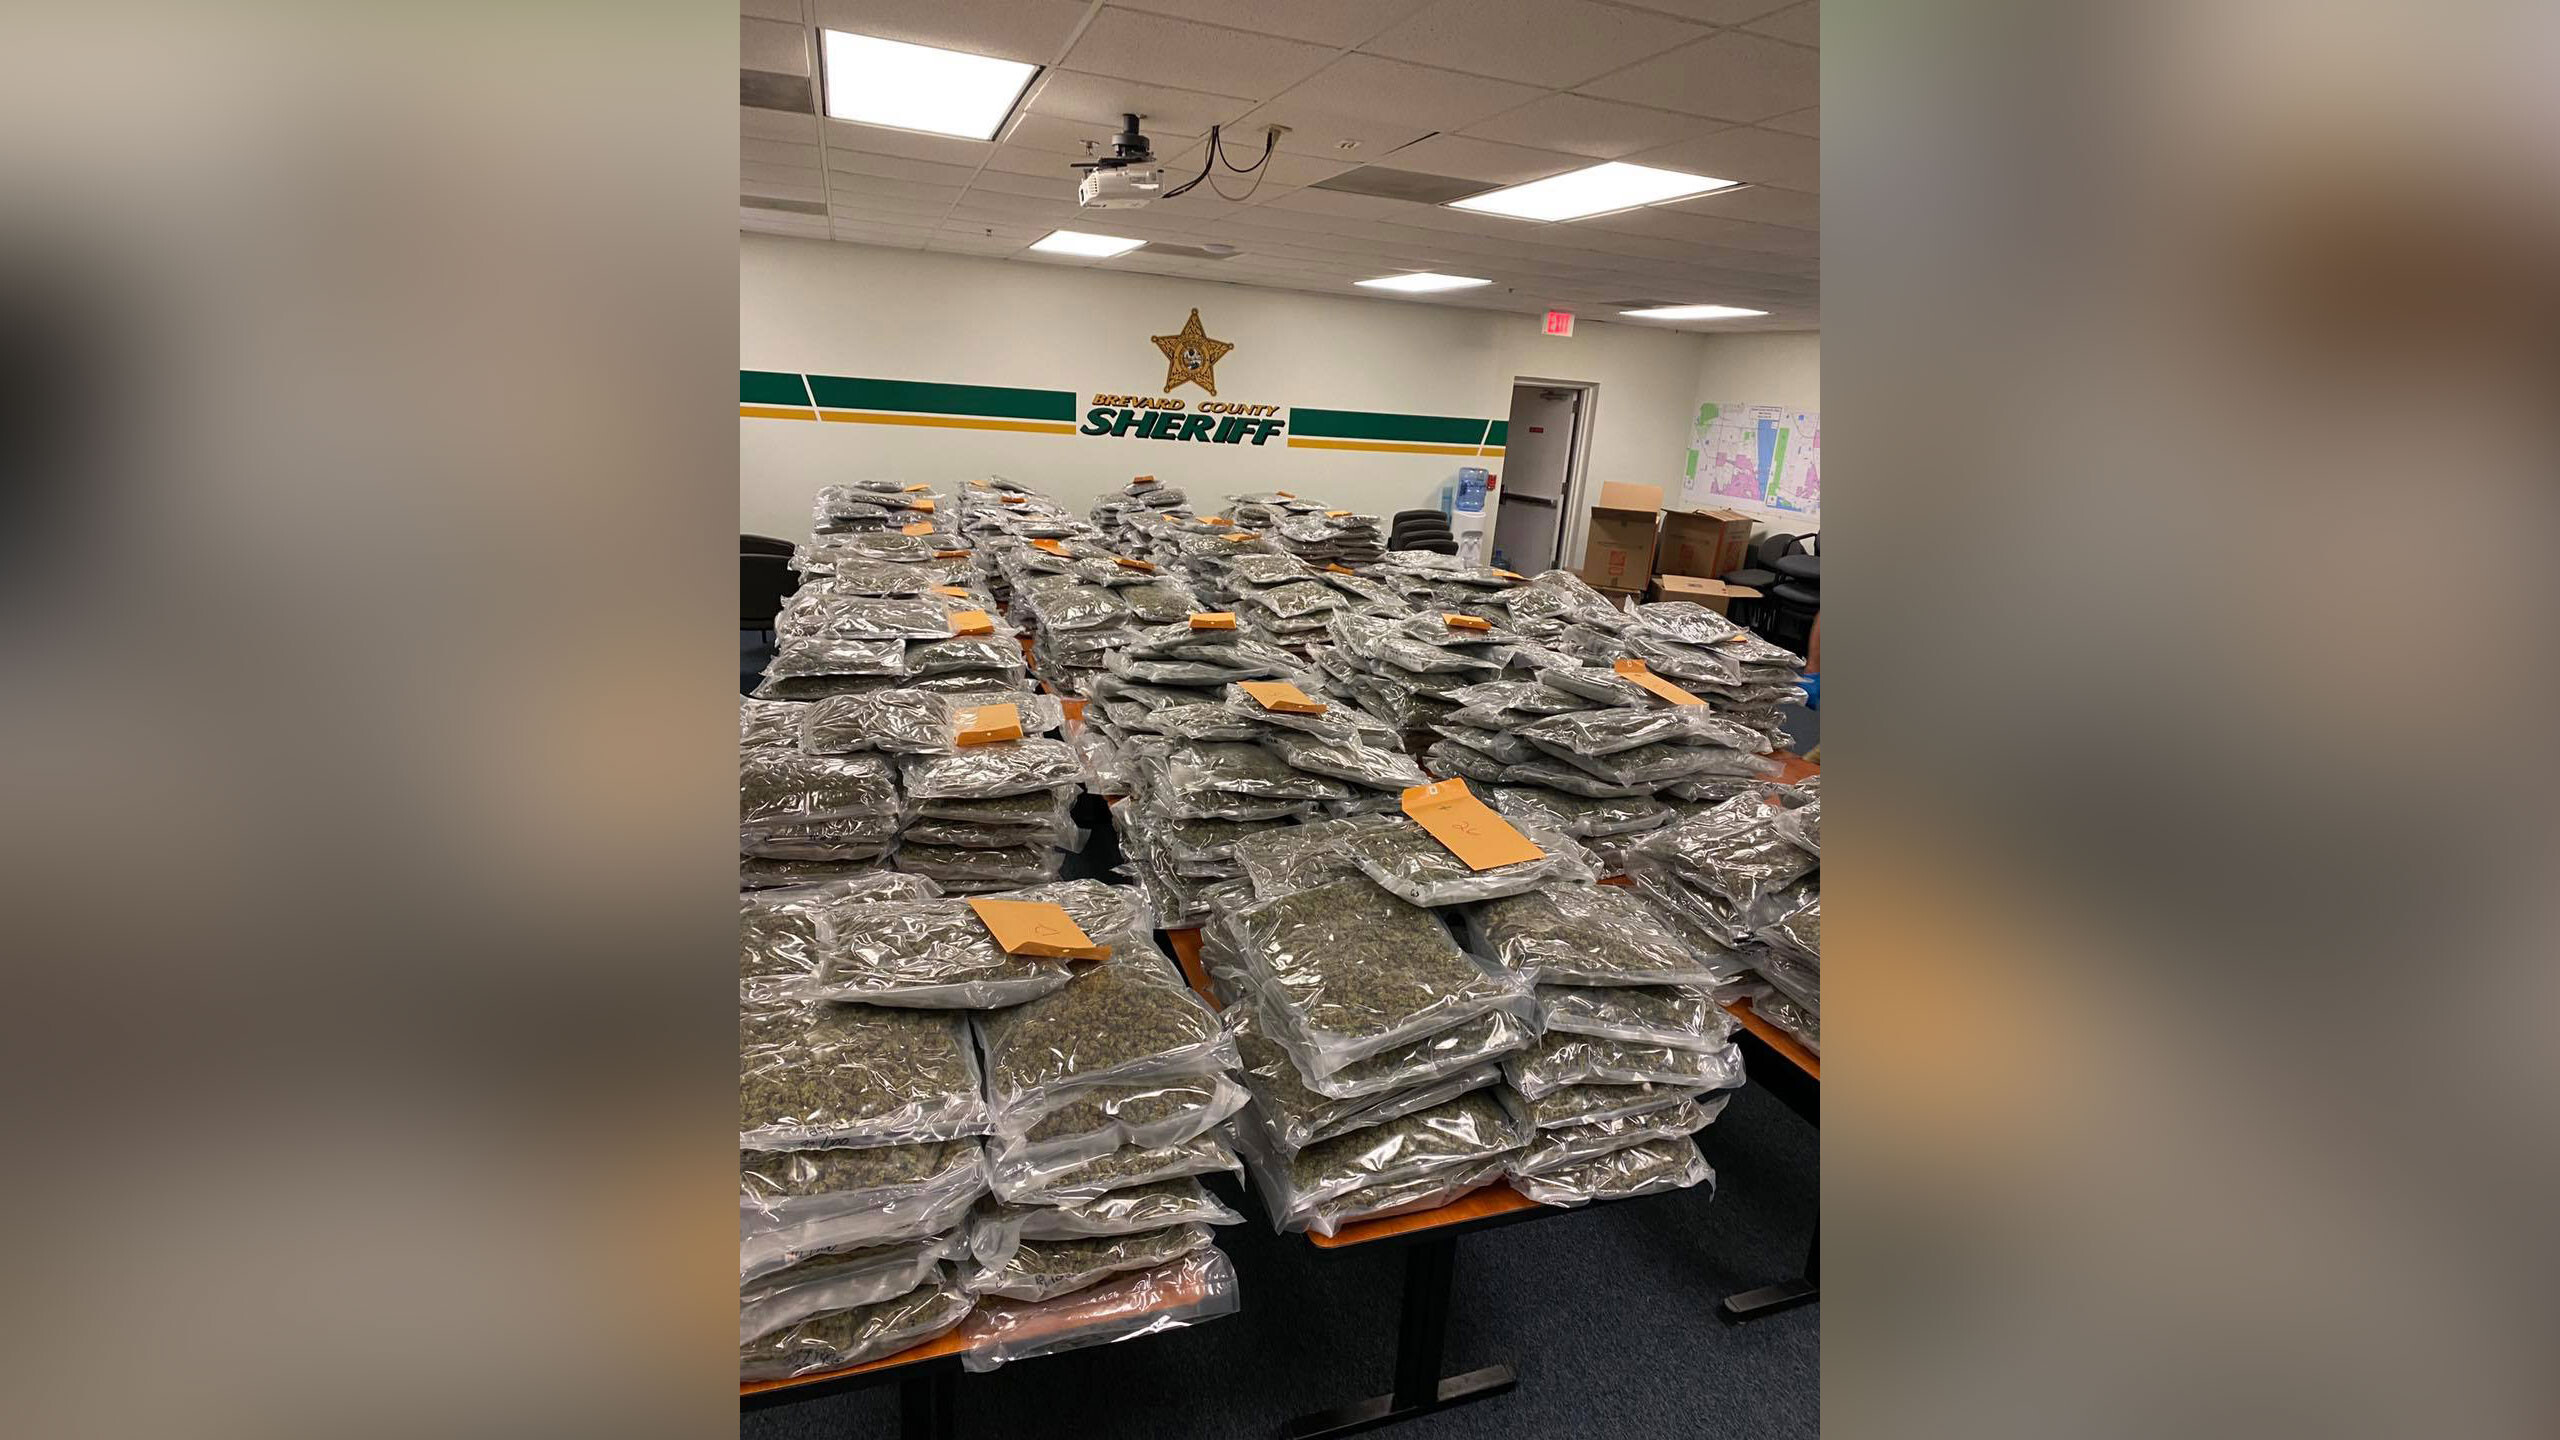 $2 million worth of marijuana was found in a Florida storage facility, and the sheriff's office wrote a Facebook post looking for the rightful owner